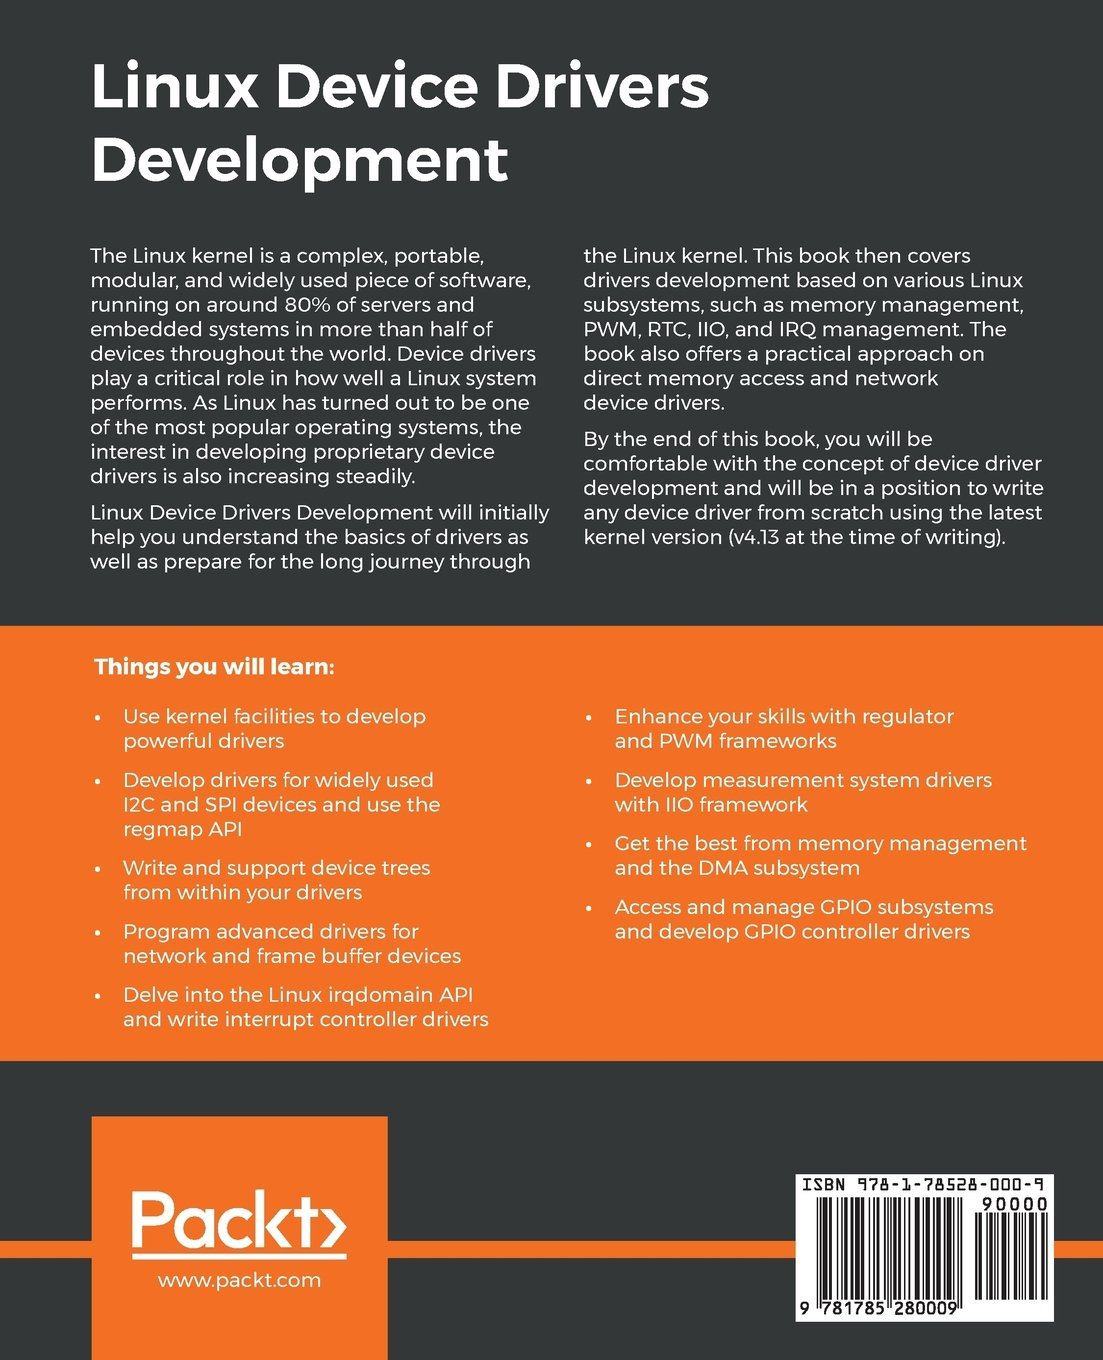 Linux Device Drivers Development: Develop customized drivers for